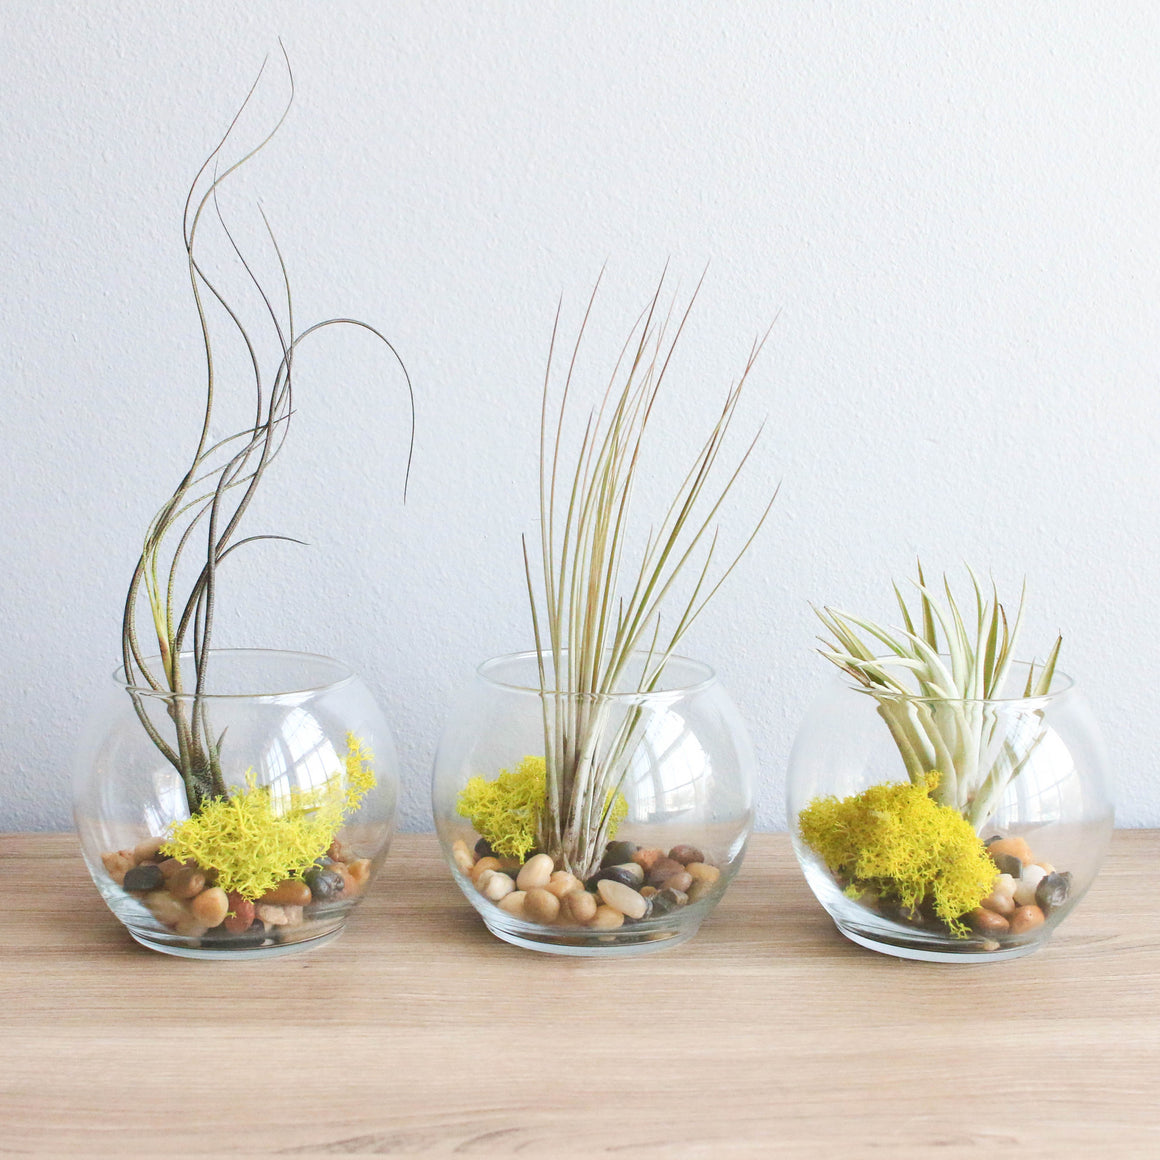 Complete Bubble Trio Terrariums with Juncea, Butzii, and Harrisii Air Plants